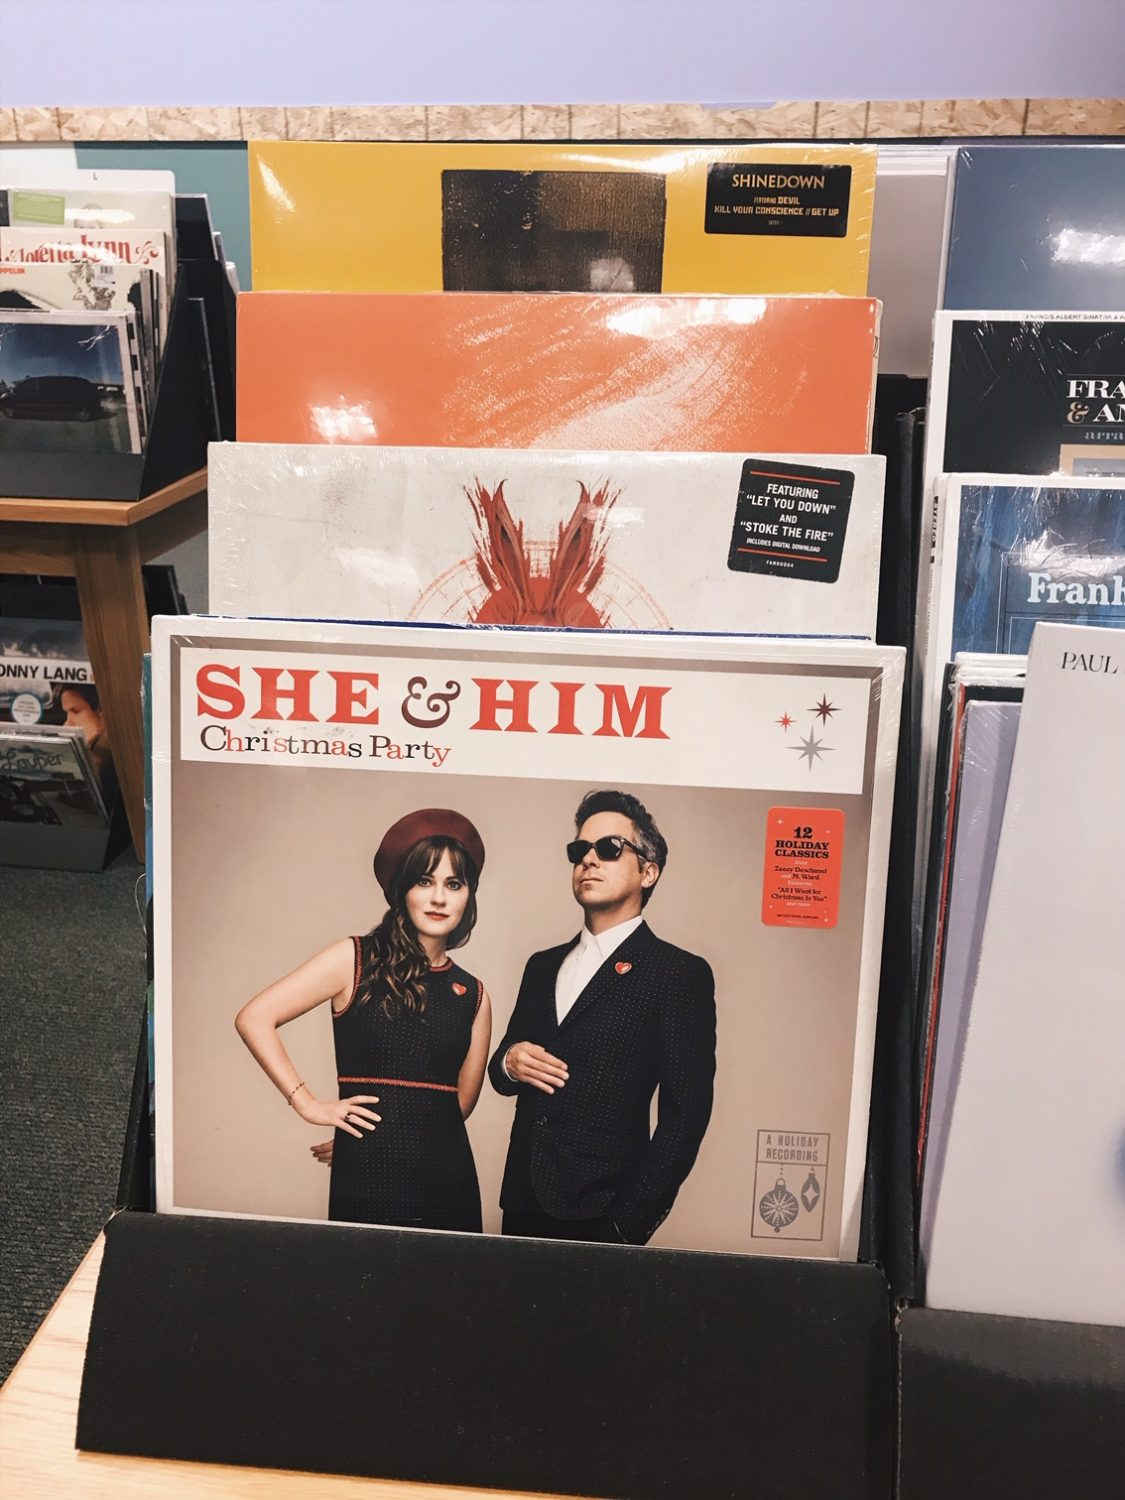 She & Him Christmas Party Vinyl Record at Barnes & Noble